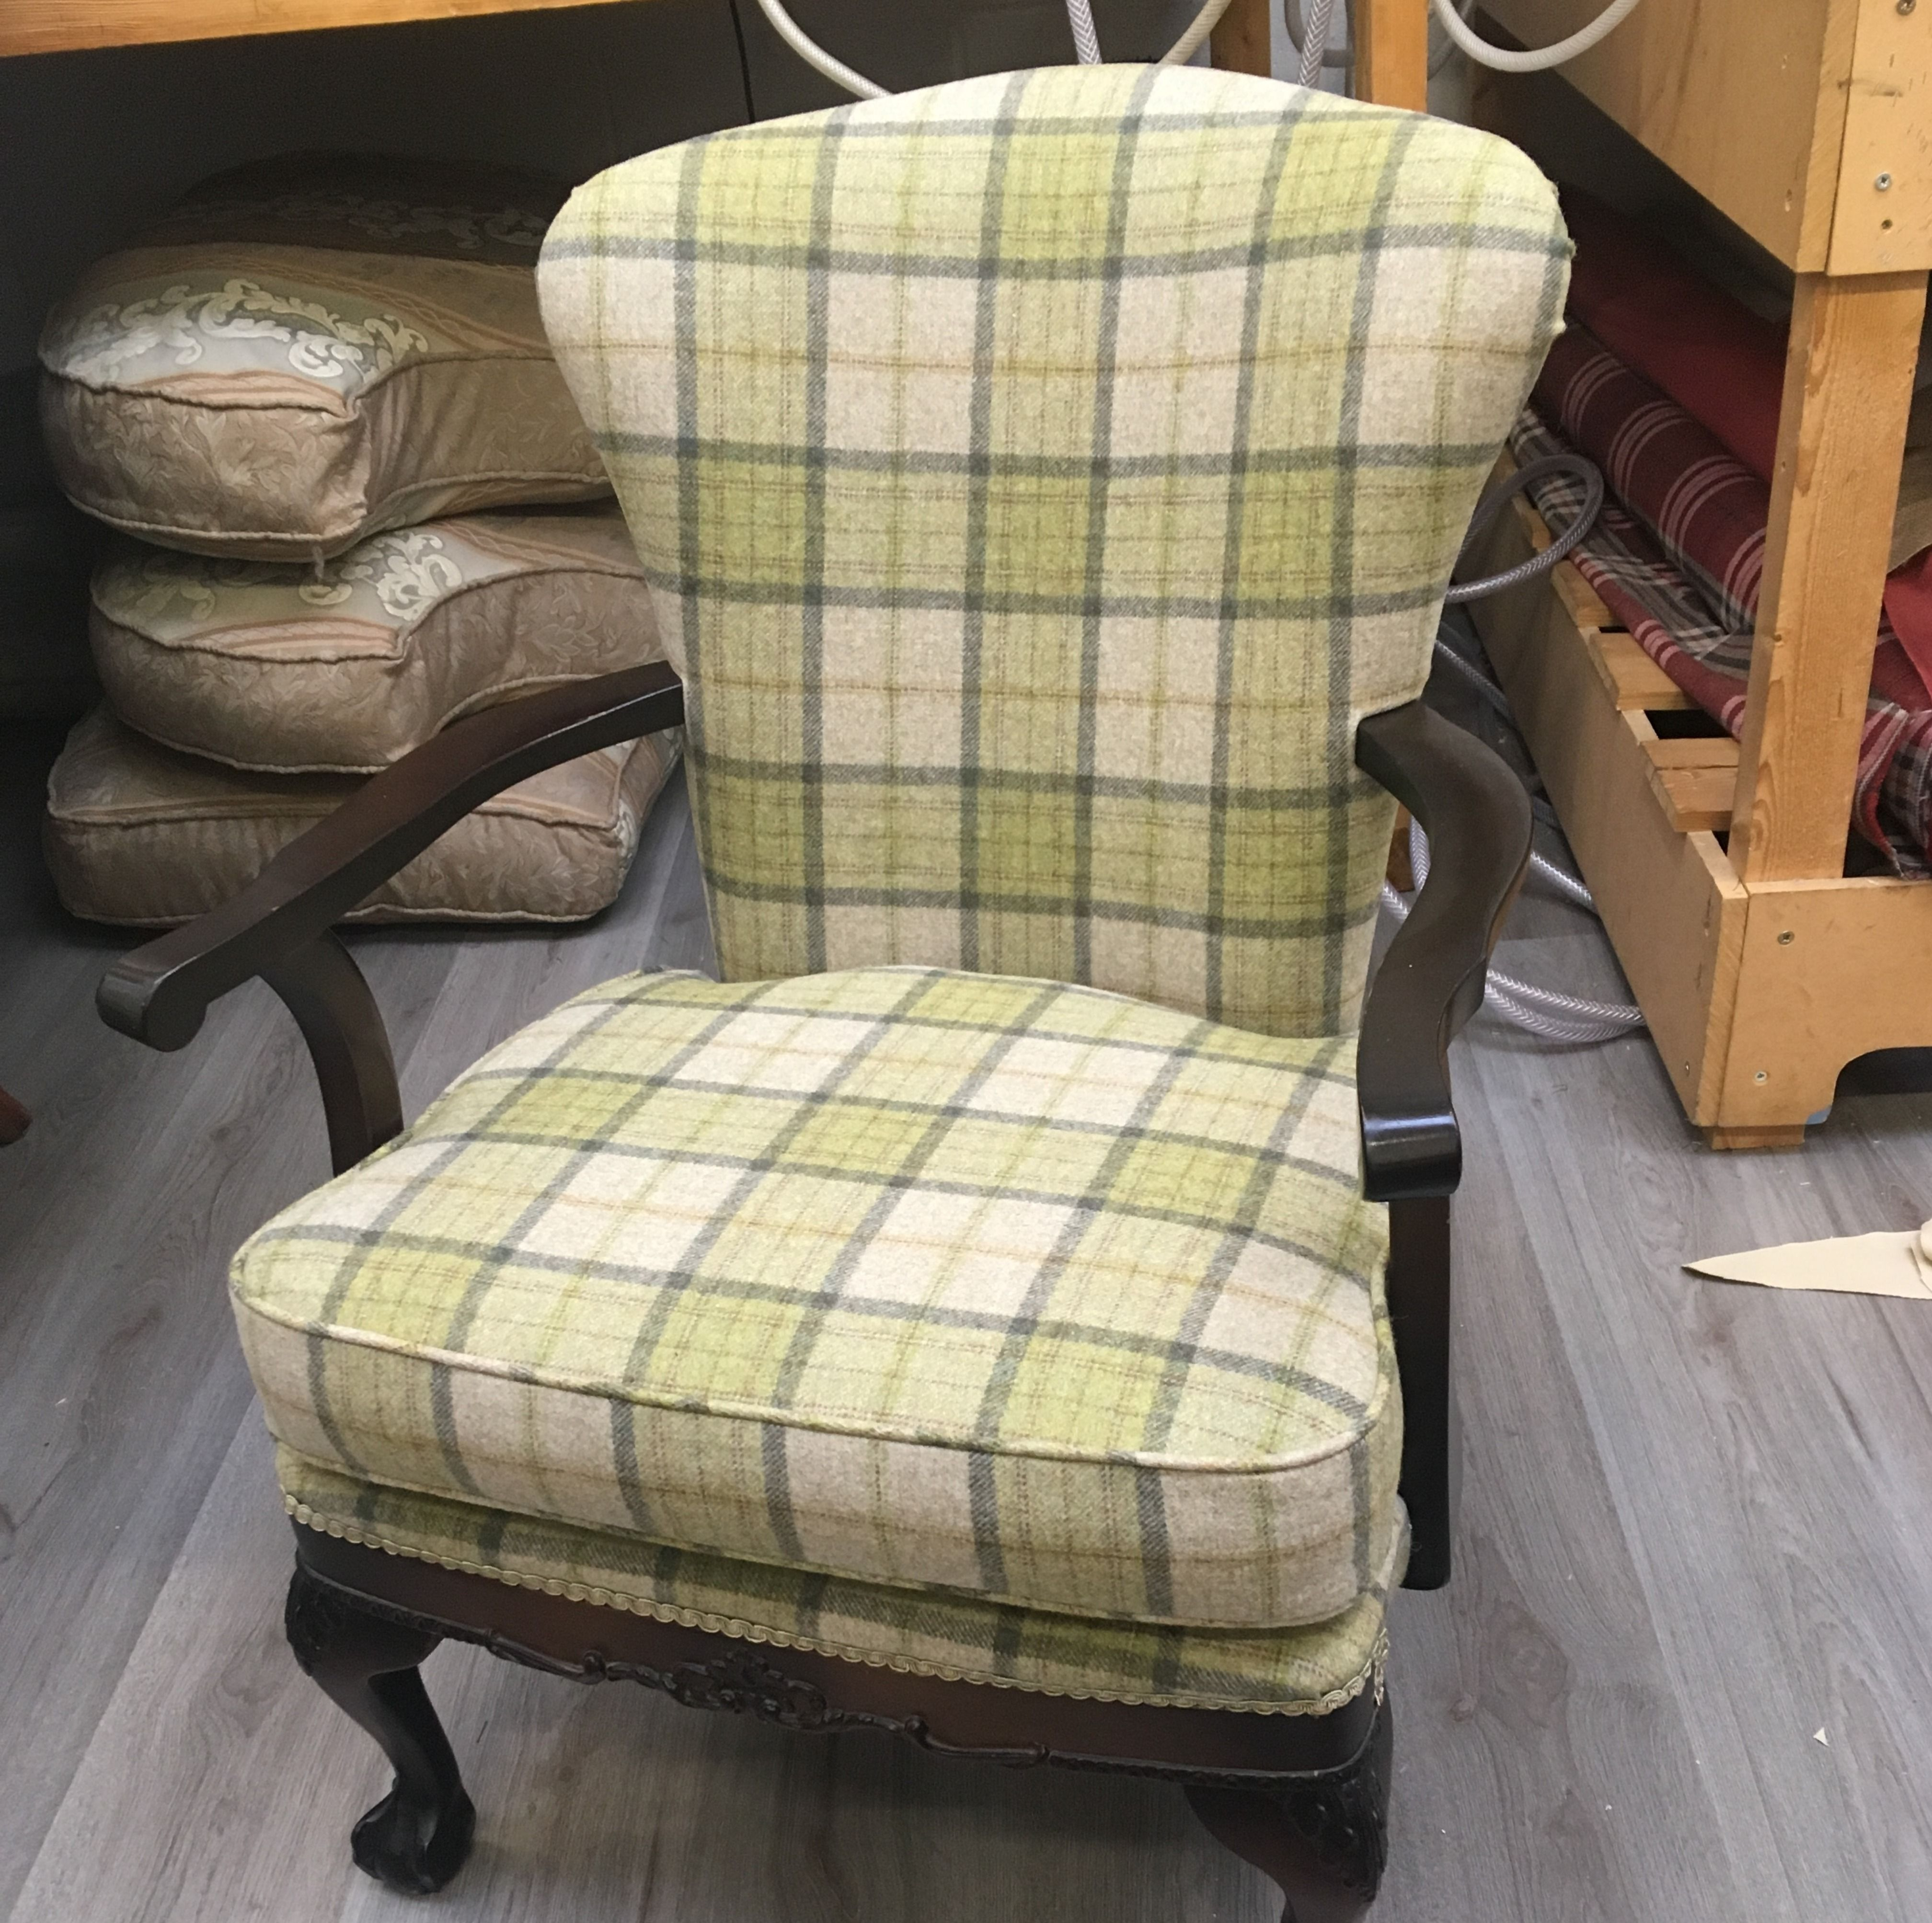 Just recovered a small chair in Abraham moon fabric. Ready